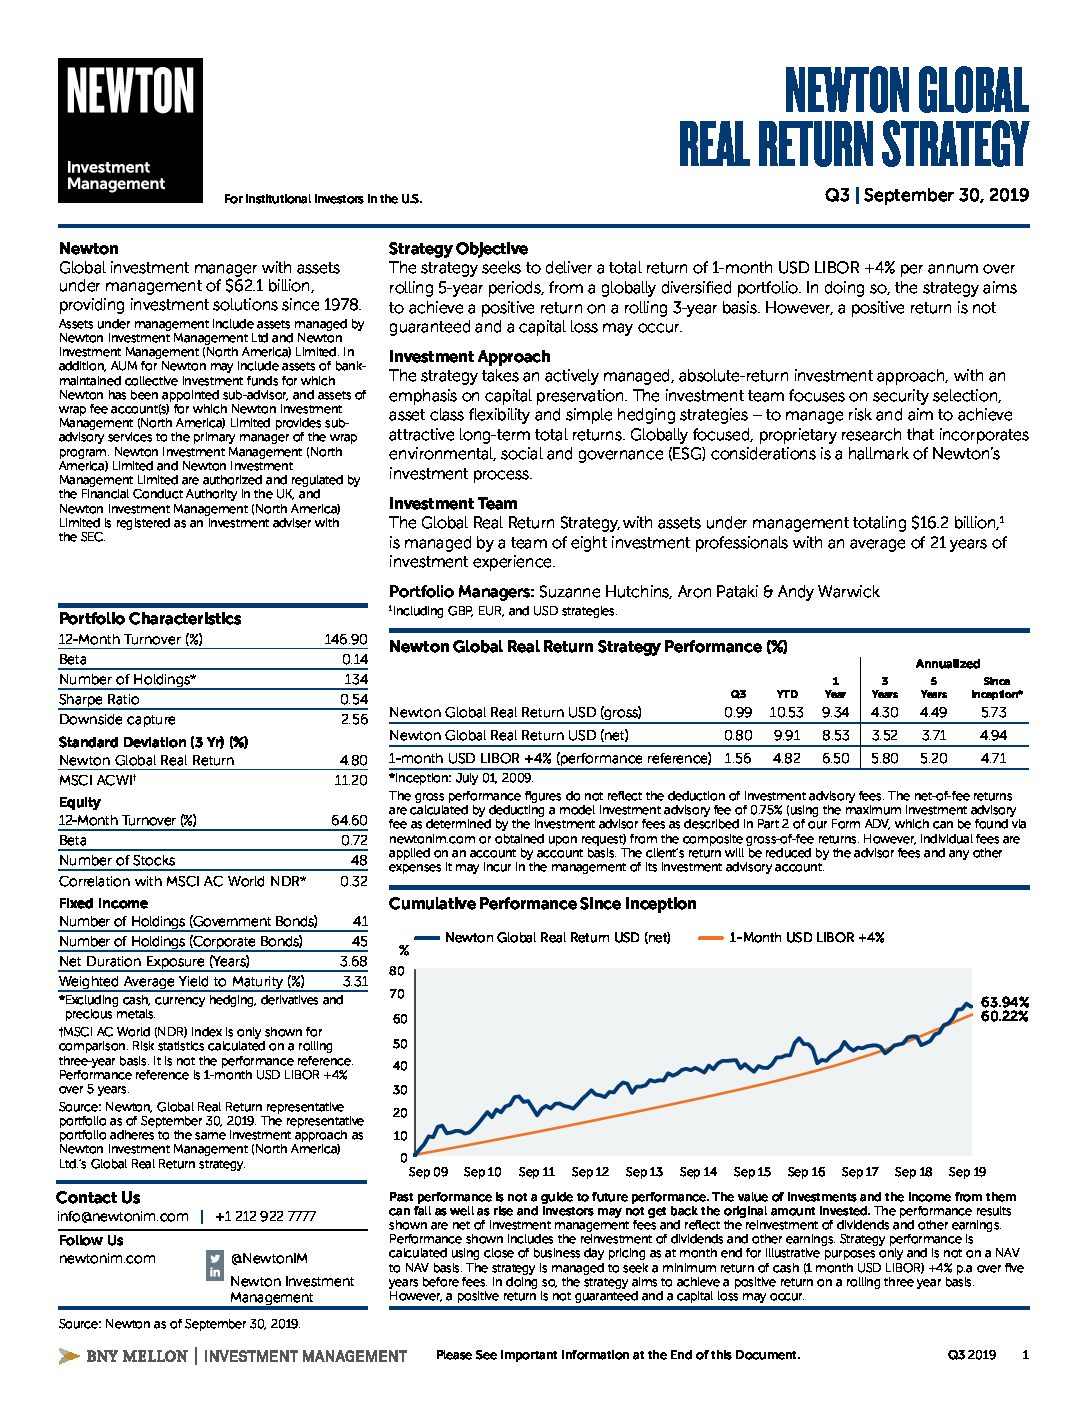 NIMNA Global Real Return strategy factsheet